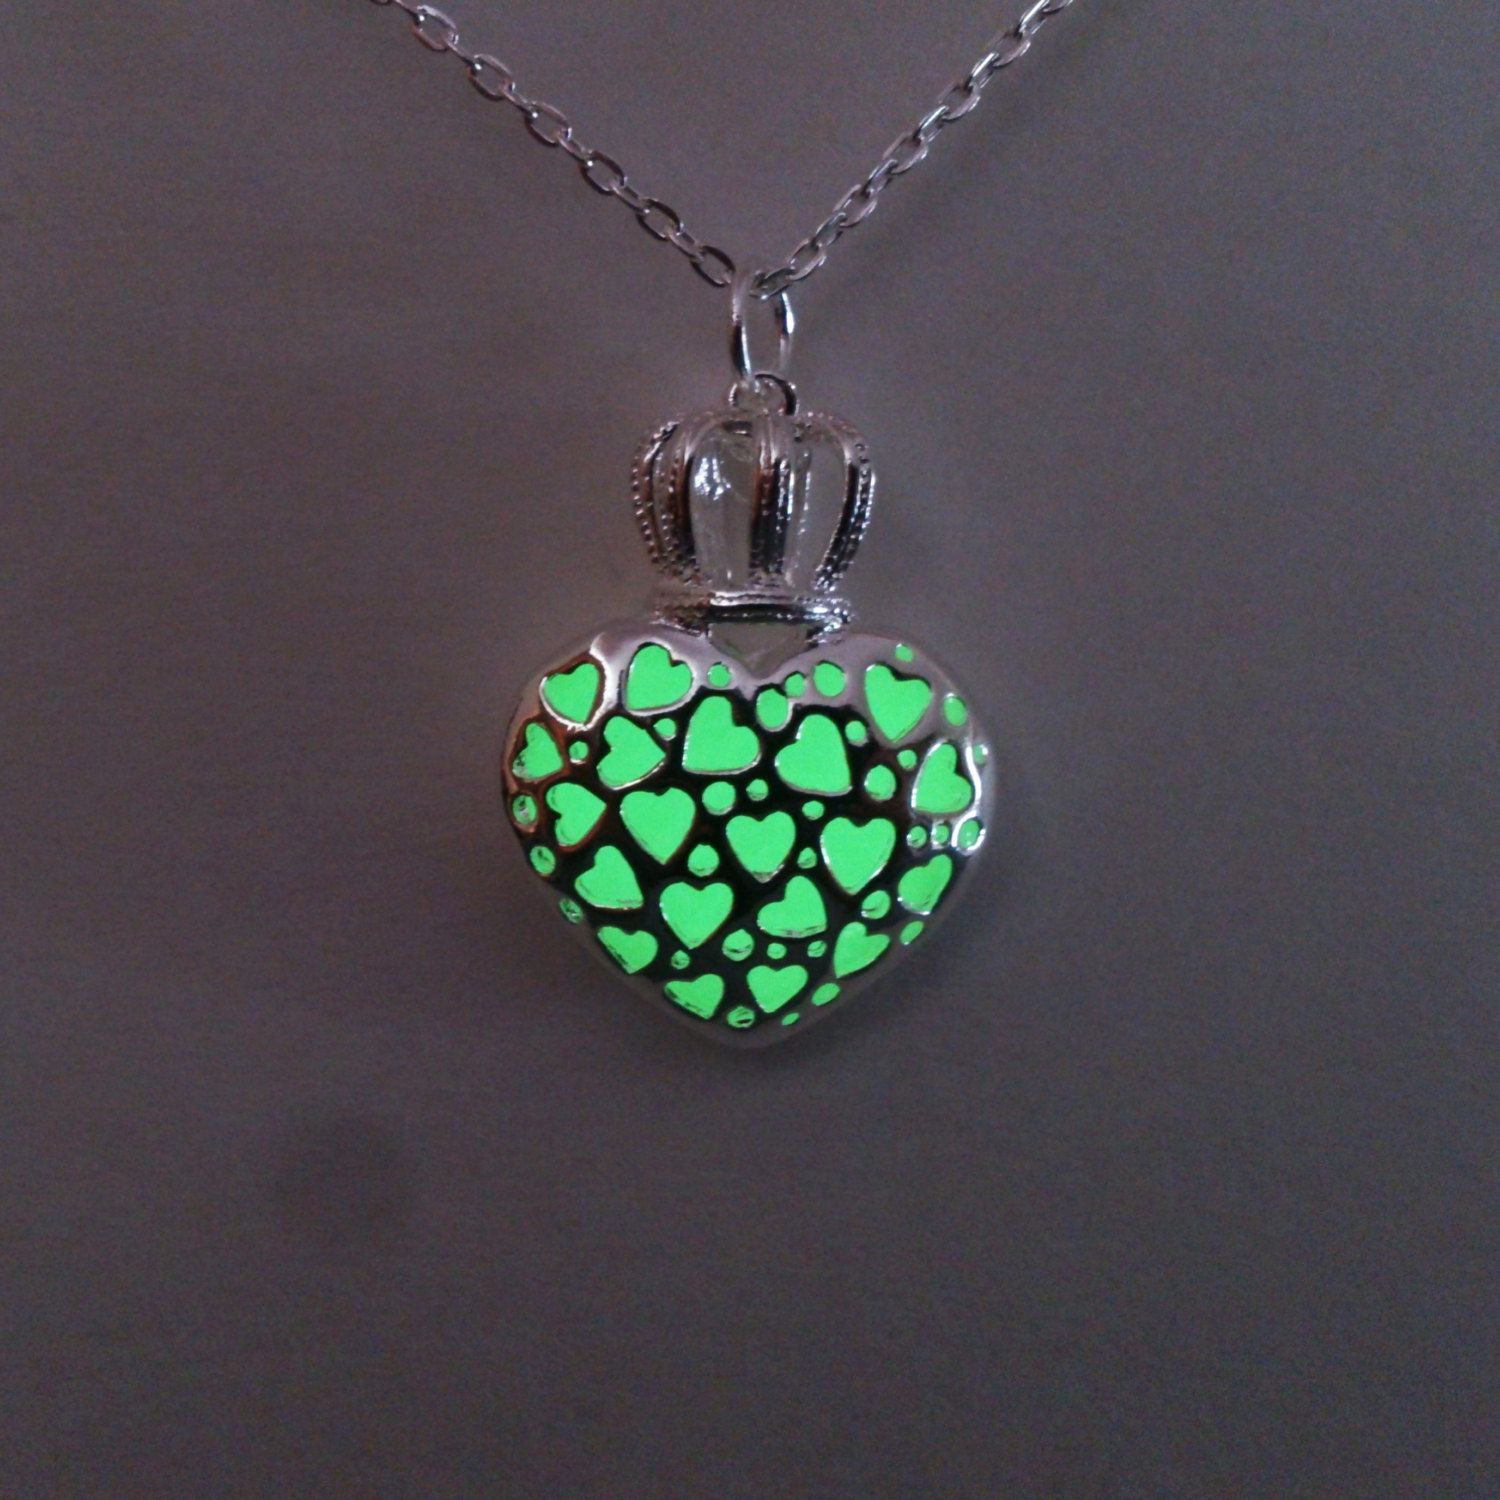 free dark as to a cube shipping for necklaces necklace pin great any cyan such glow the party in and occasion use are